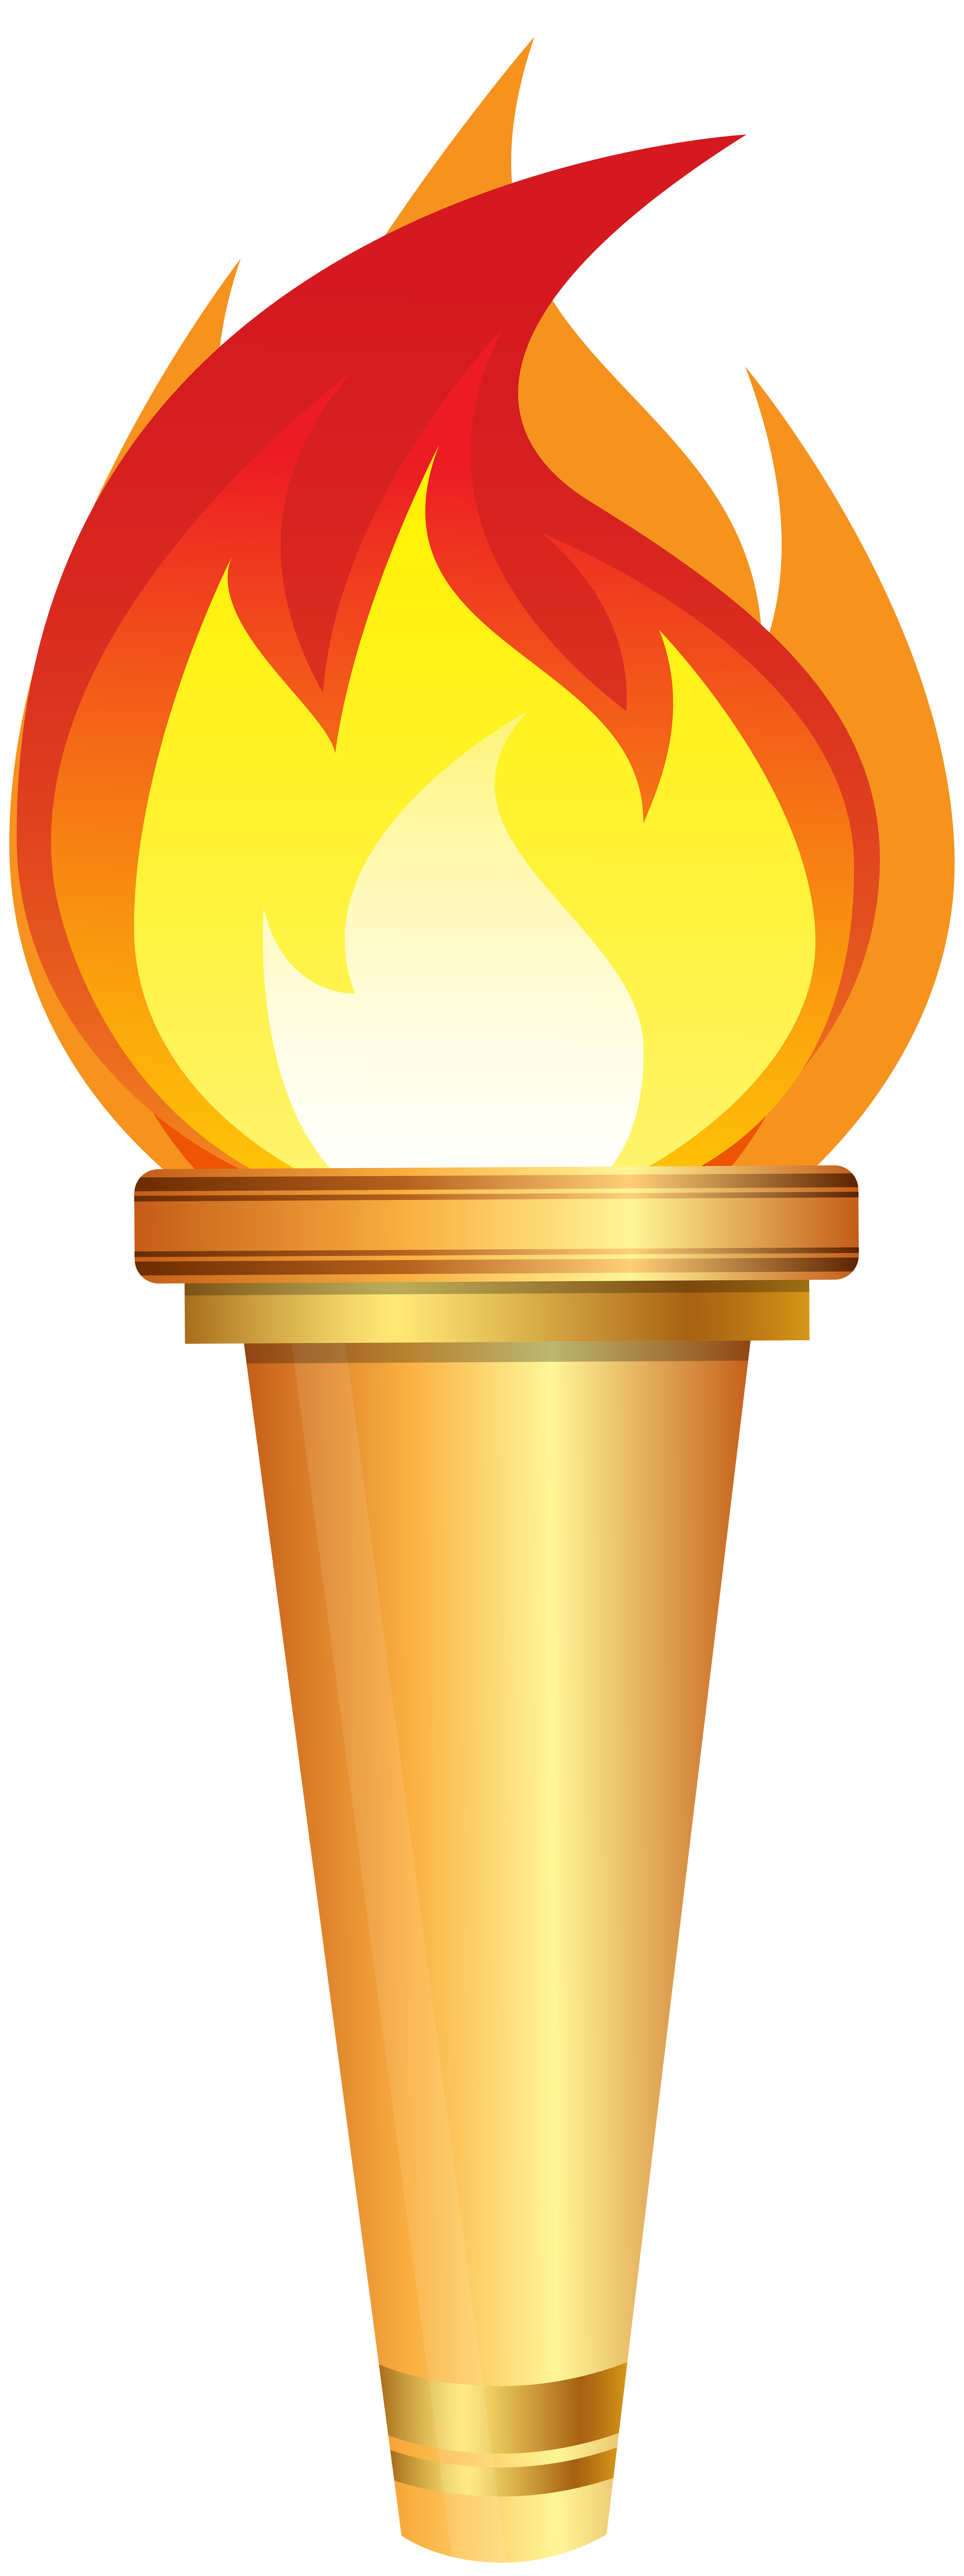 torch clipart gold